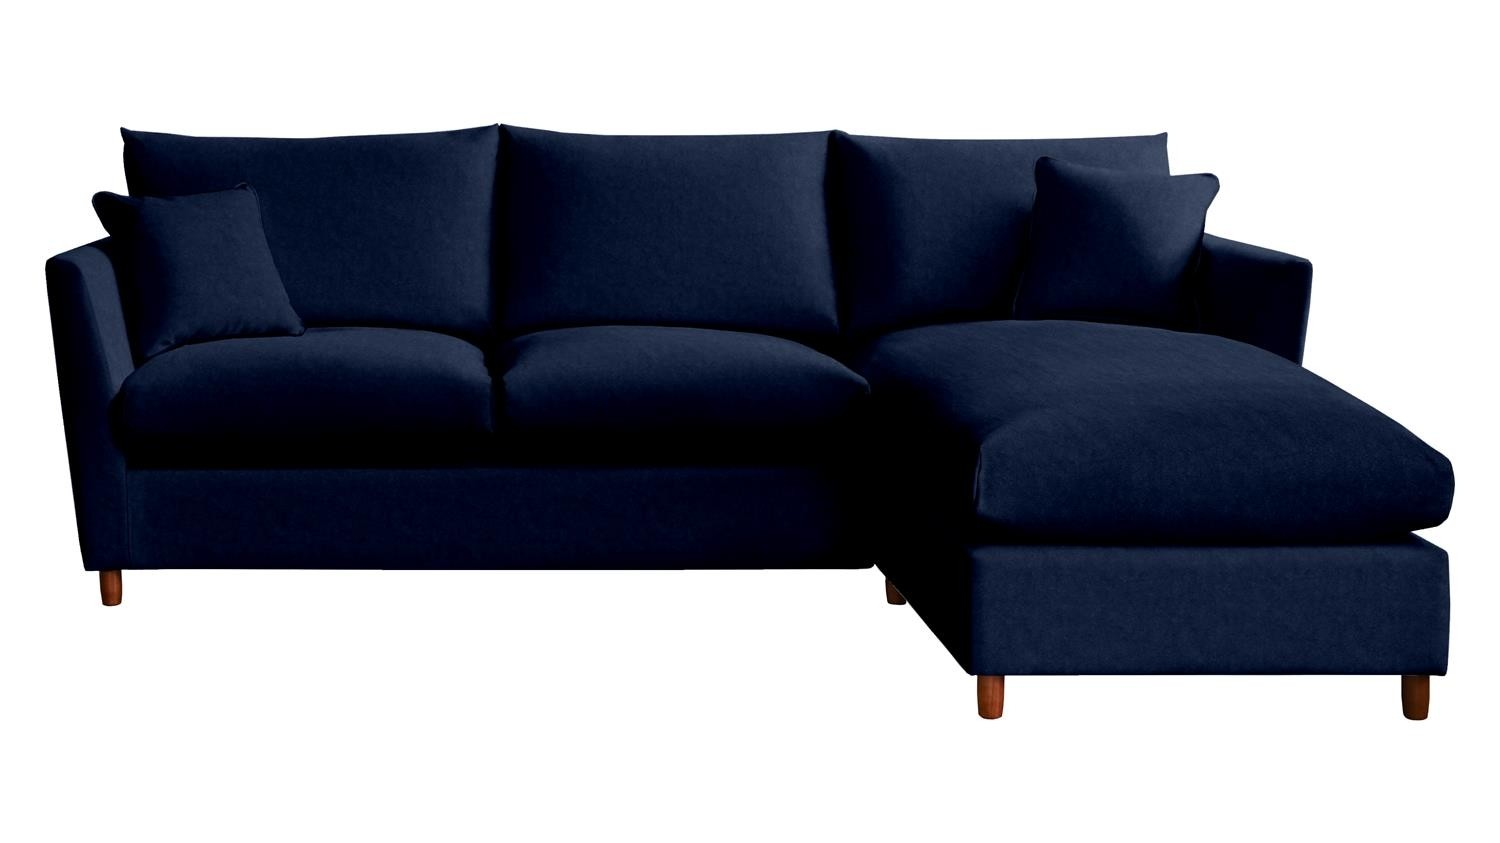 The Ansty 5 Seater Chaise Sofa Bed